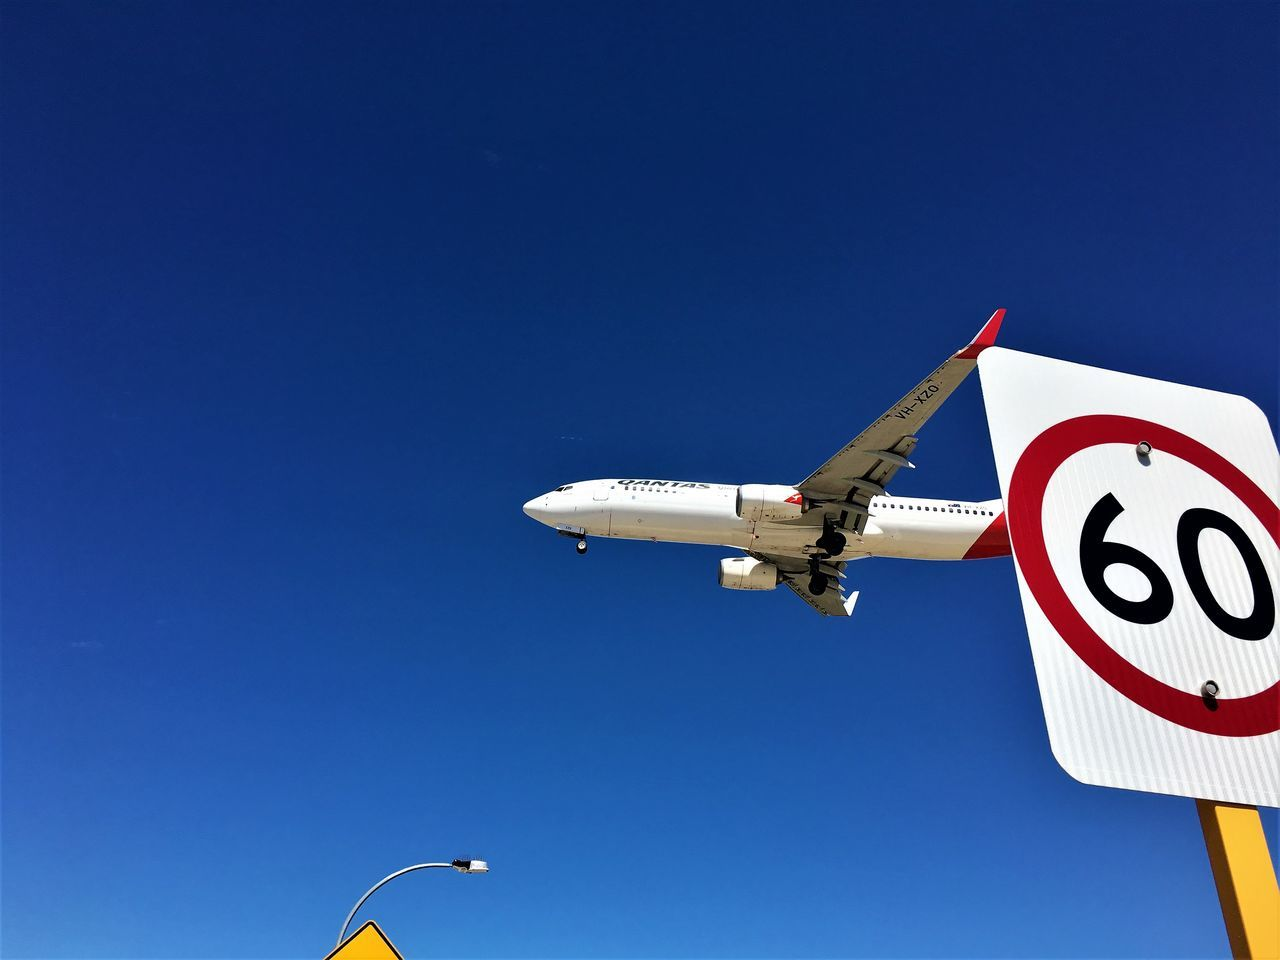 60 Aircraft Airplane Australia Blue Boeing Boeing 737 Clear Sky Day Flying Jet Jet Engine Landing Low Angle View No People Outdoors Plane Qantas Sign Sign Board Signboard Sky Speed Speed Limit Speeding